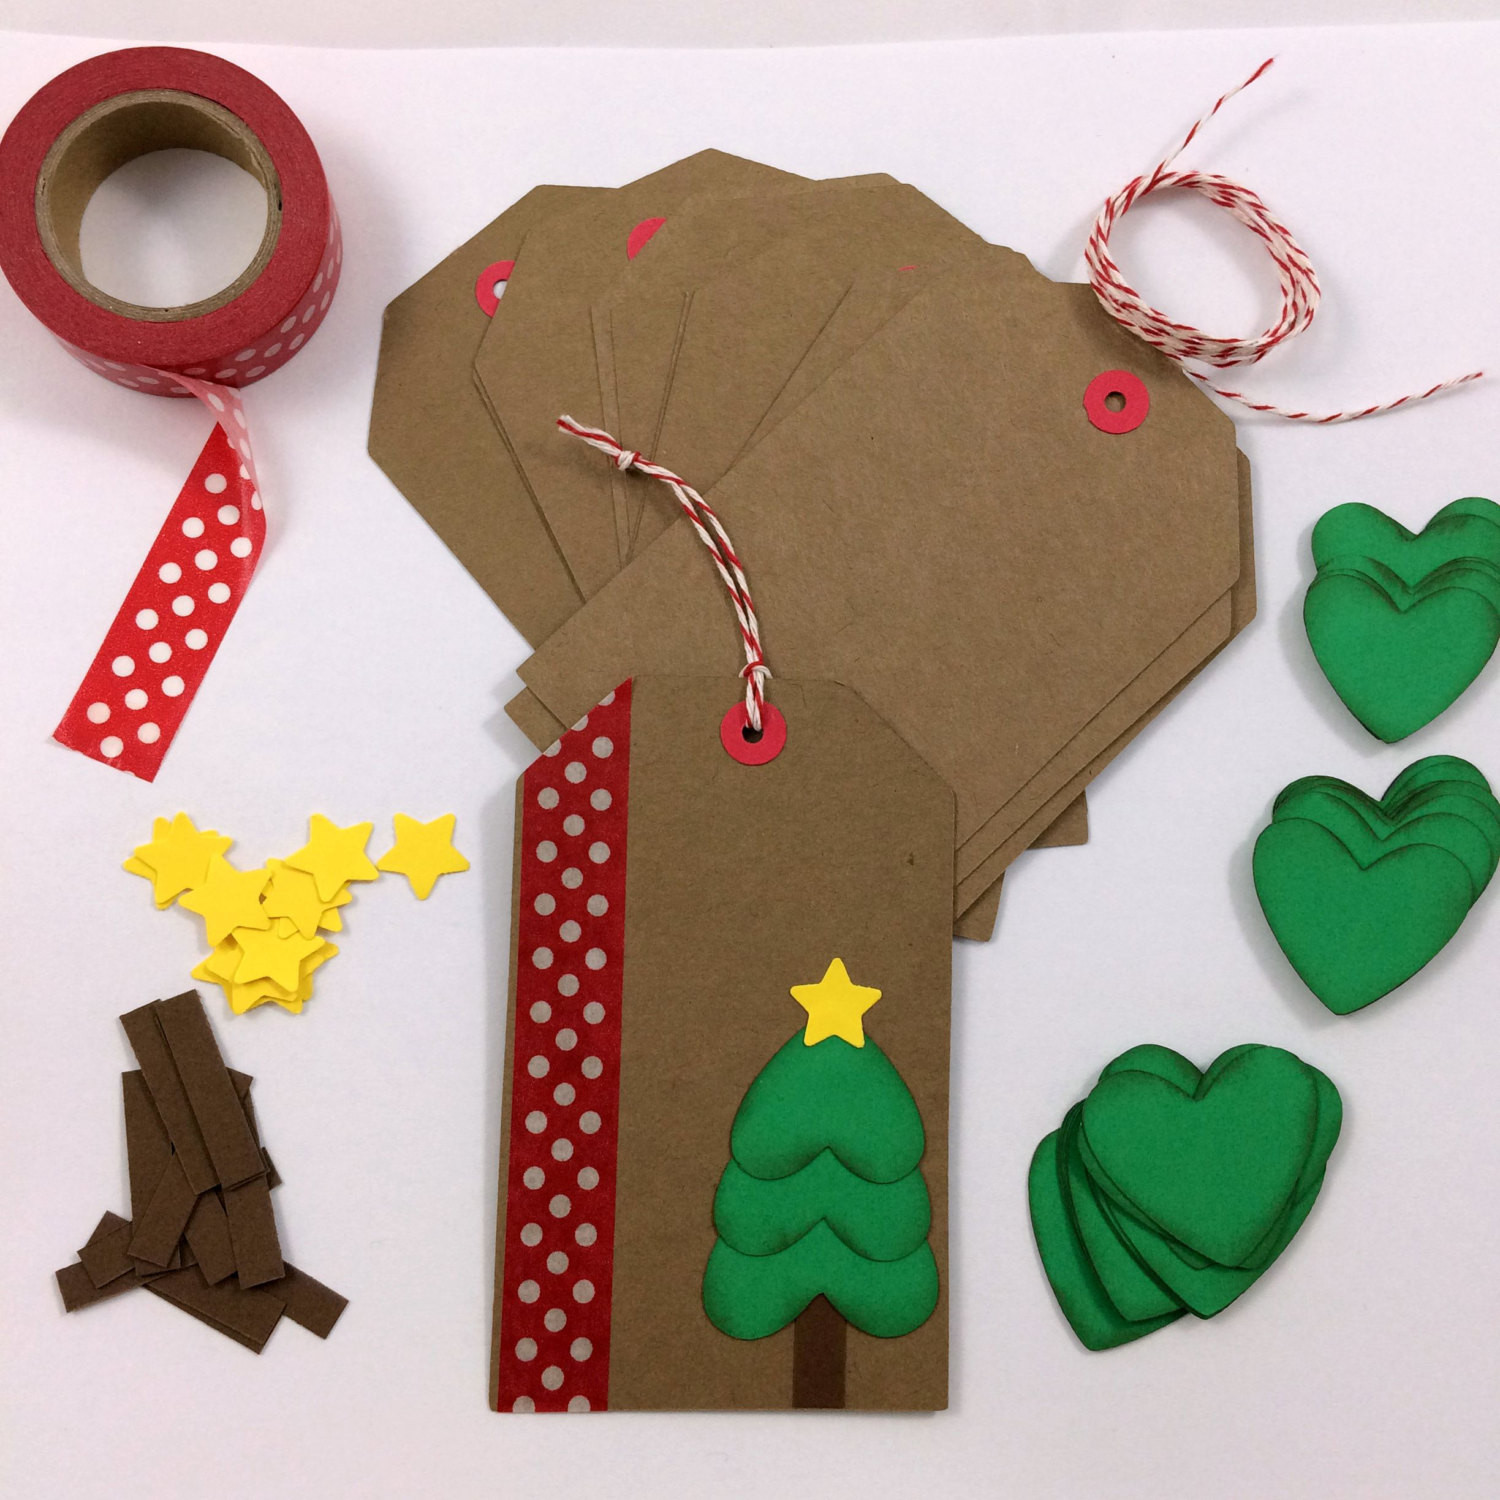 Best ideas about Christmas Gift Tags DIY . Save or Pin DIY Holiday Christmas Gift Tag Kit Makes 12 by Bump Knowledge Now.